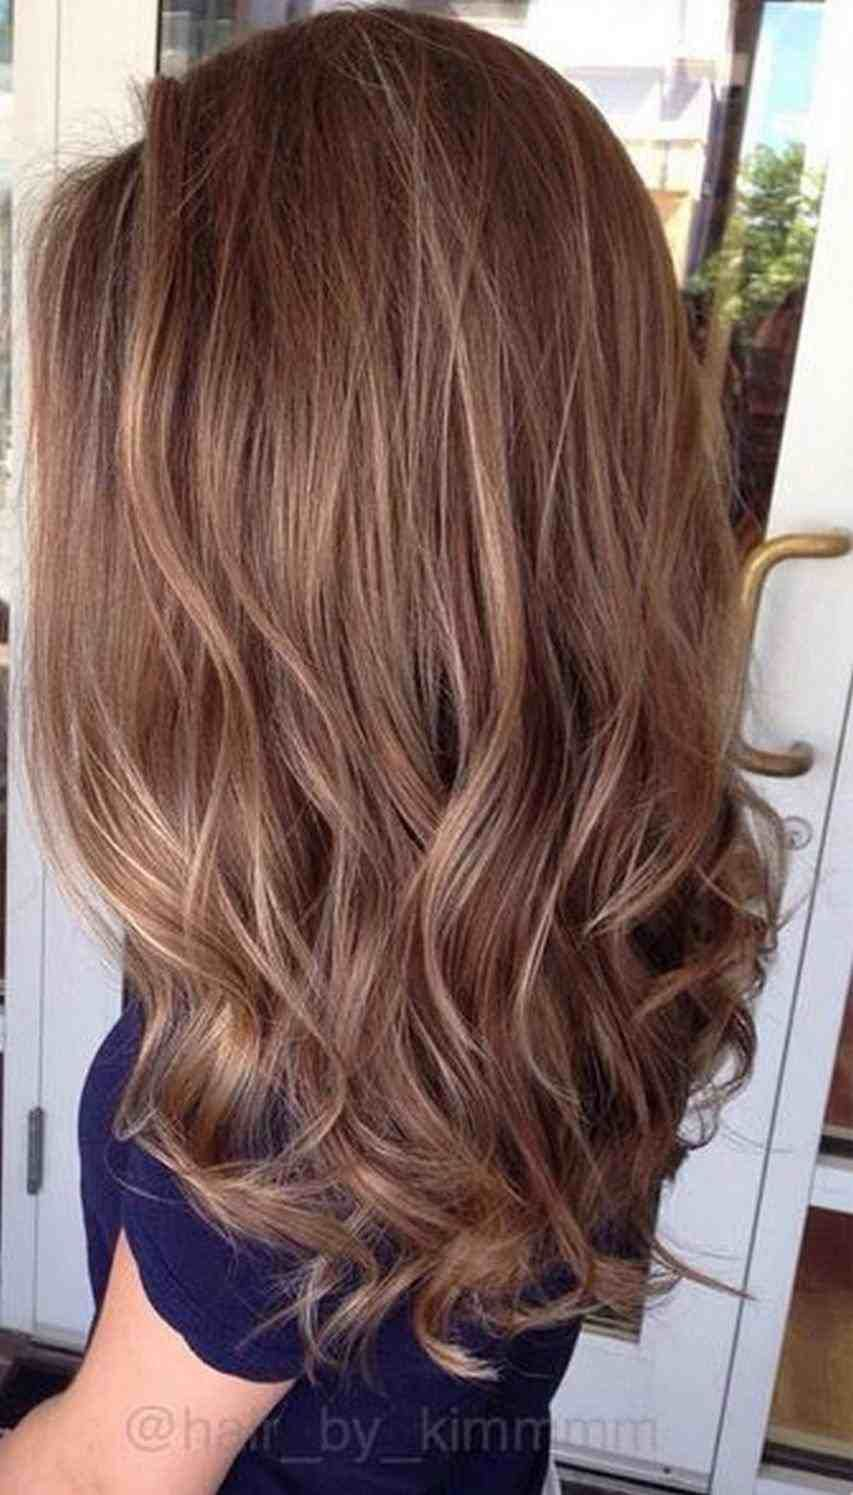 Balayagehair Club Nbspthis Website Is For Sale Nbspbalayagehair Resources And Information Light Hair Color Hair Color Light Brown Hair Styles,How To Organize Your Apartment